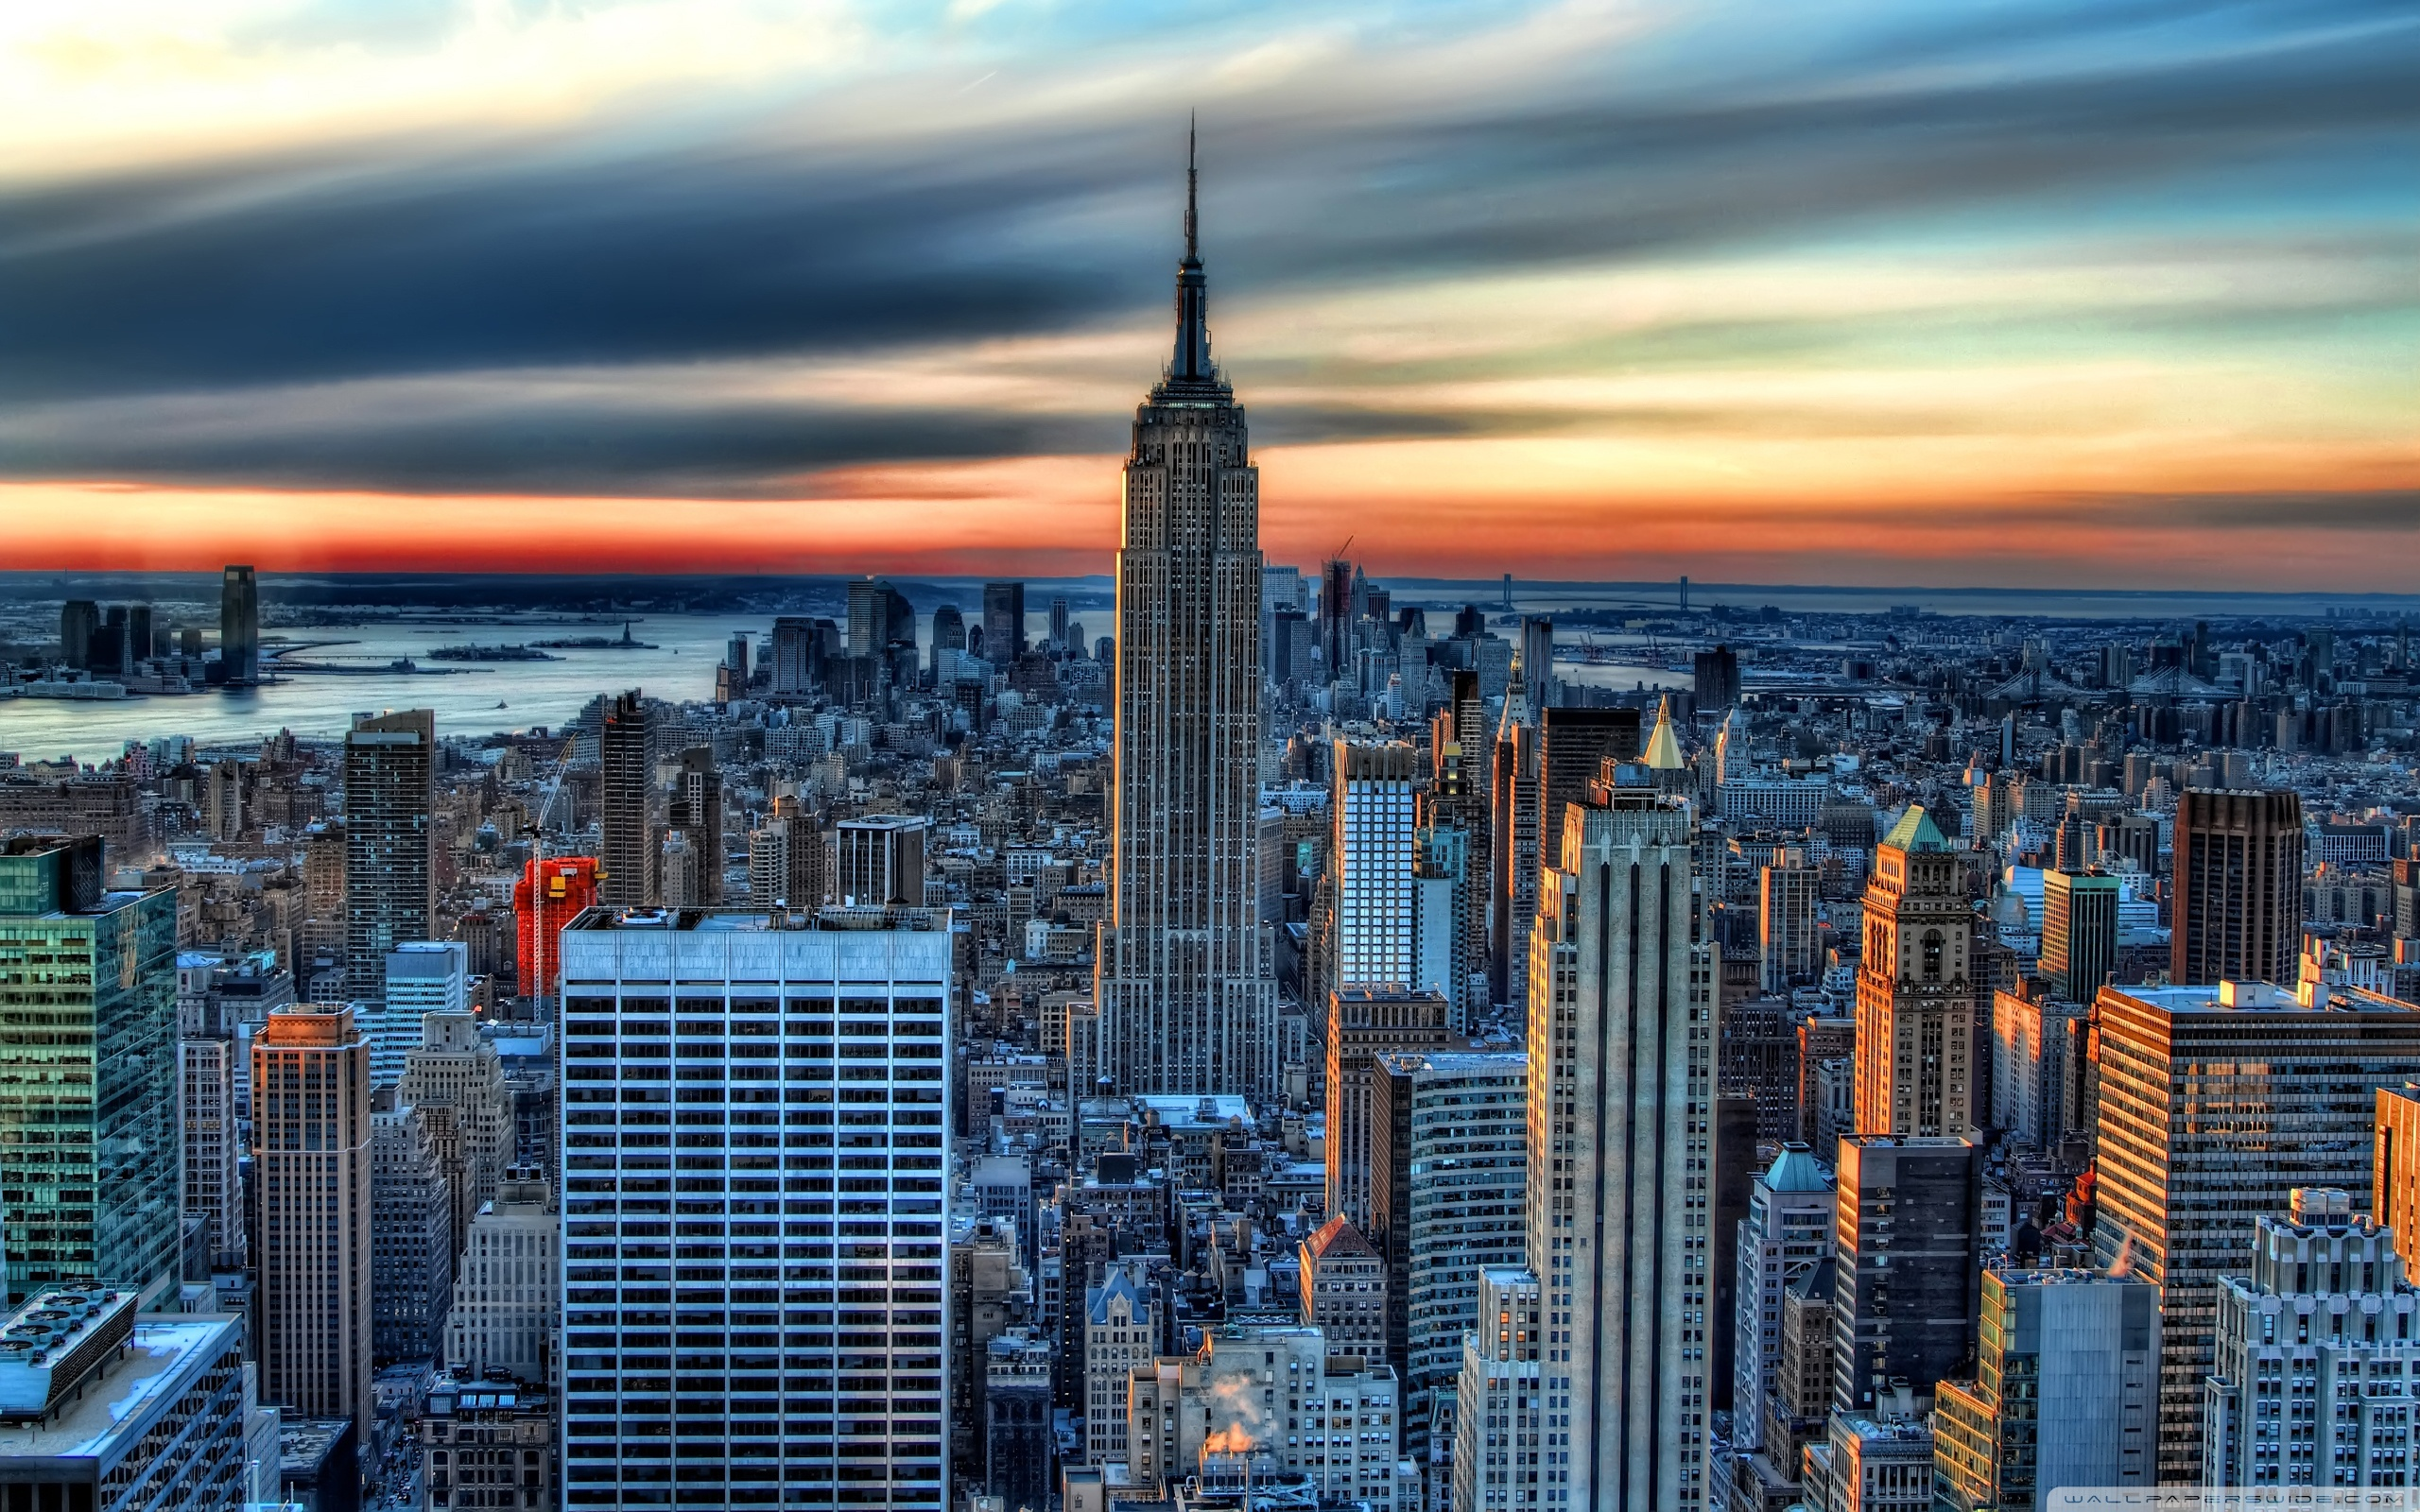 Free Download New York City Hdr 4k Hd Desktop Wallpaper For 4k Ultra Hd Tv 2560x1600 For Your Desktop Mobile Tablet Explore 23 Hd Nyc Wallpaper Hd Nyc Wallpaper